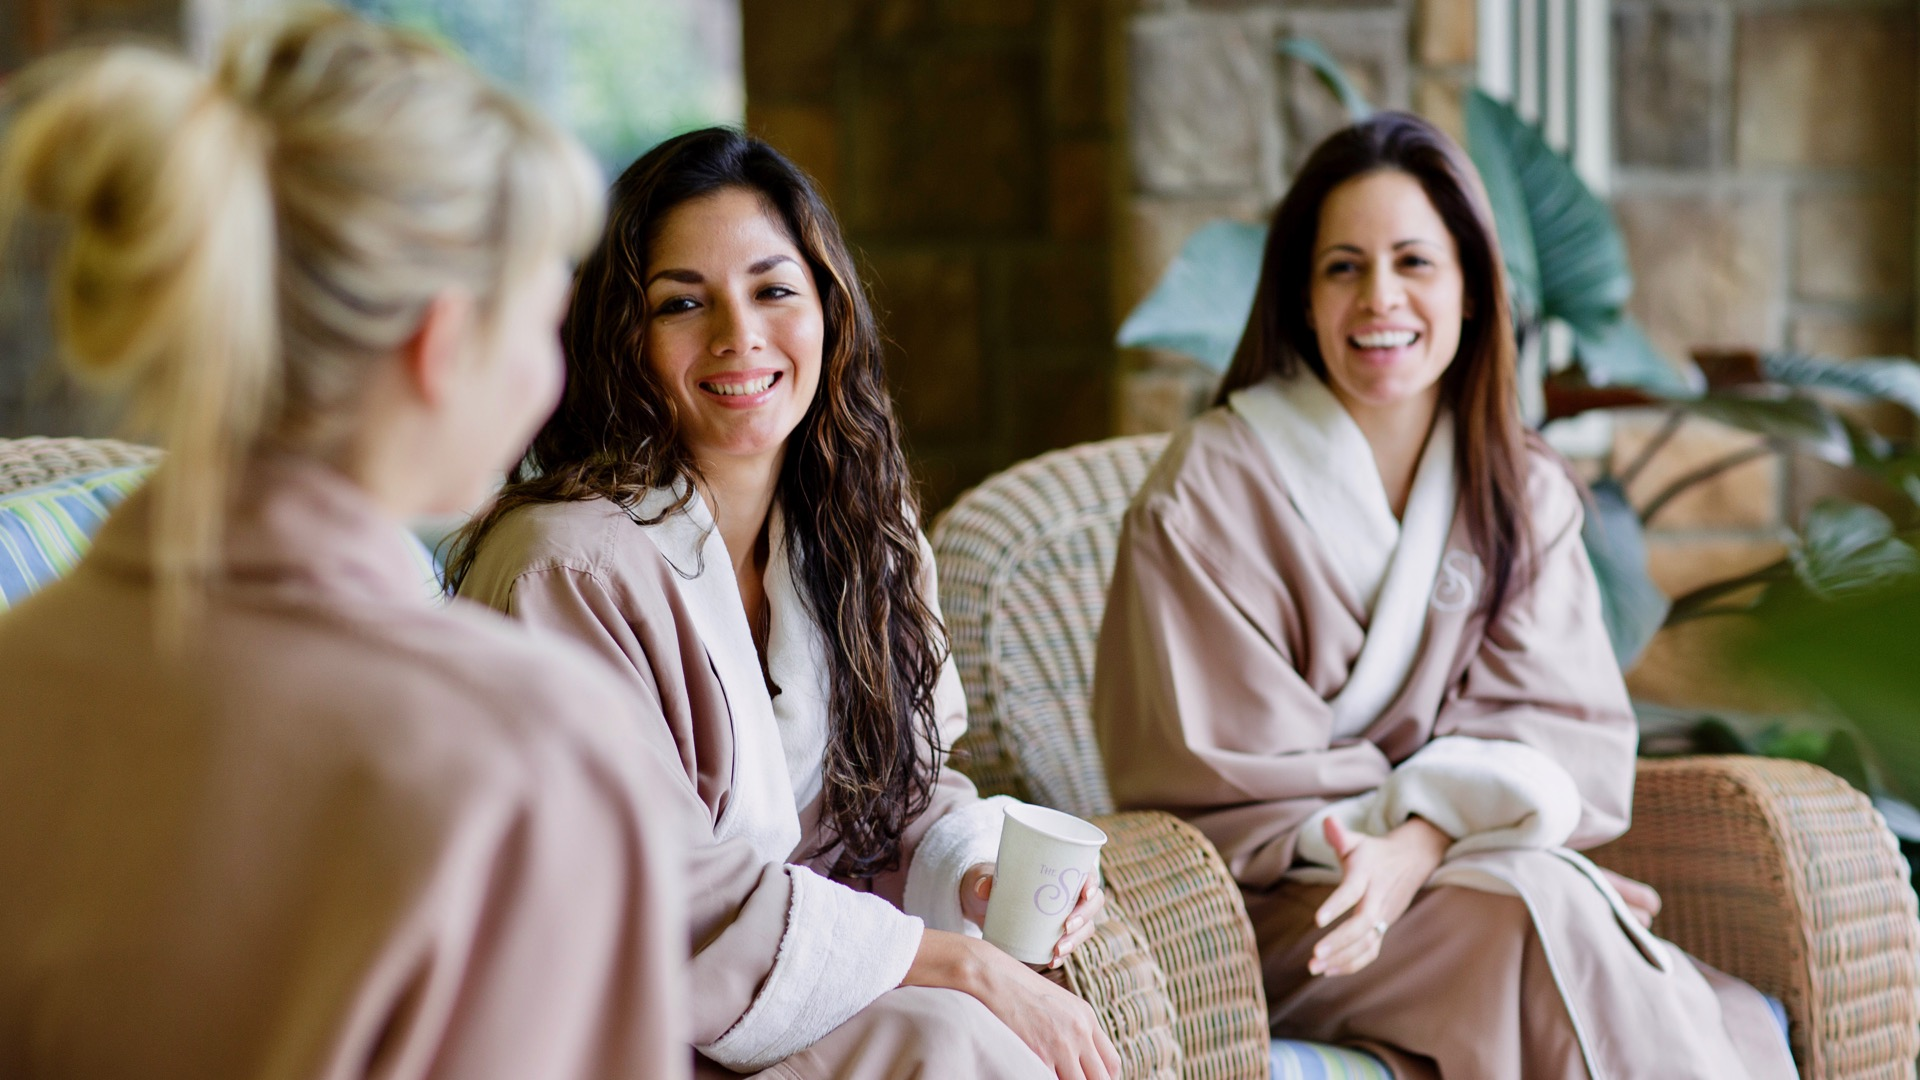 The Spa at Ballantyne, Spas of America